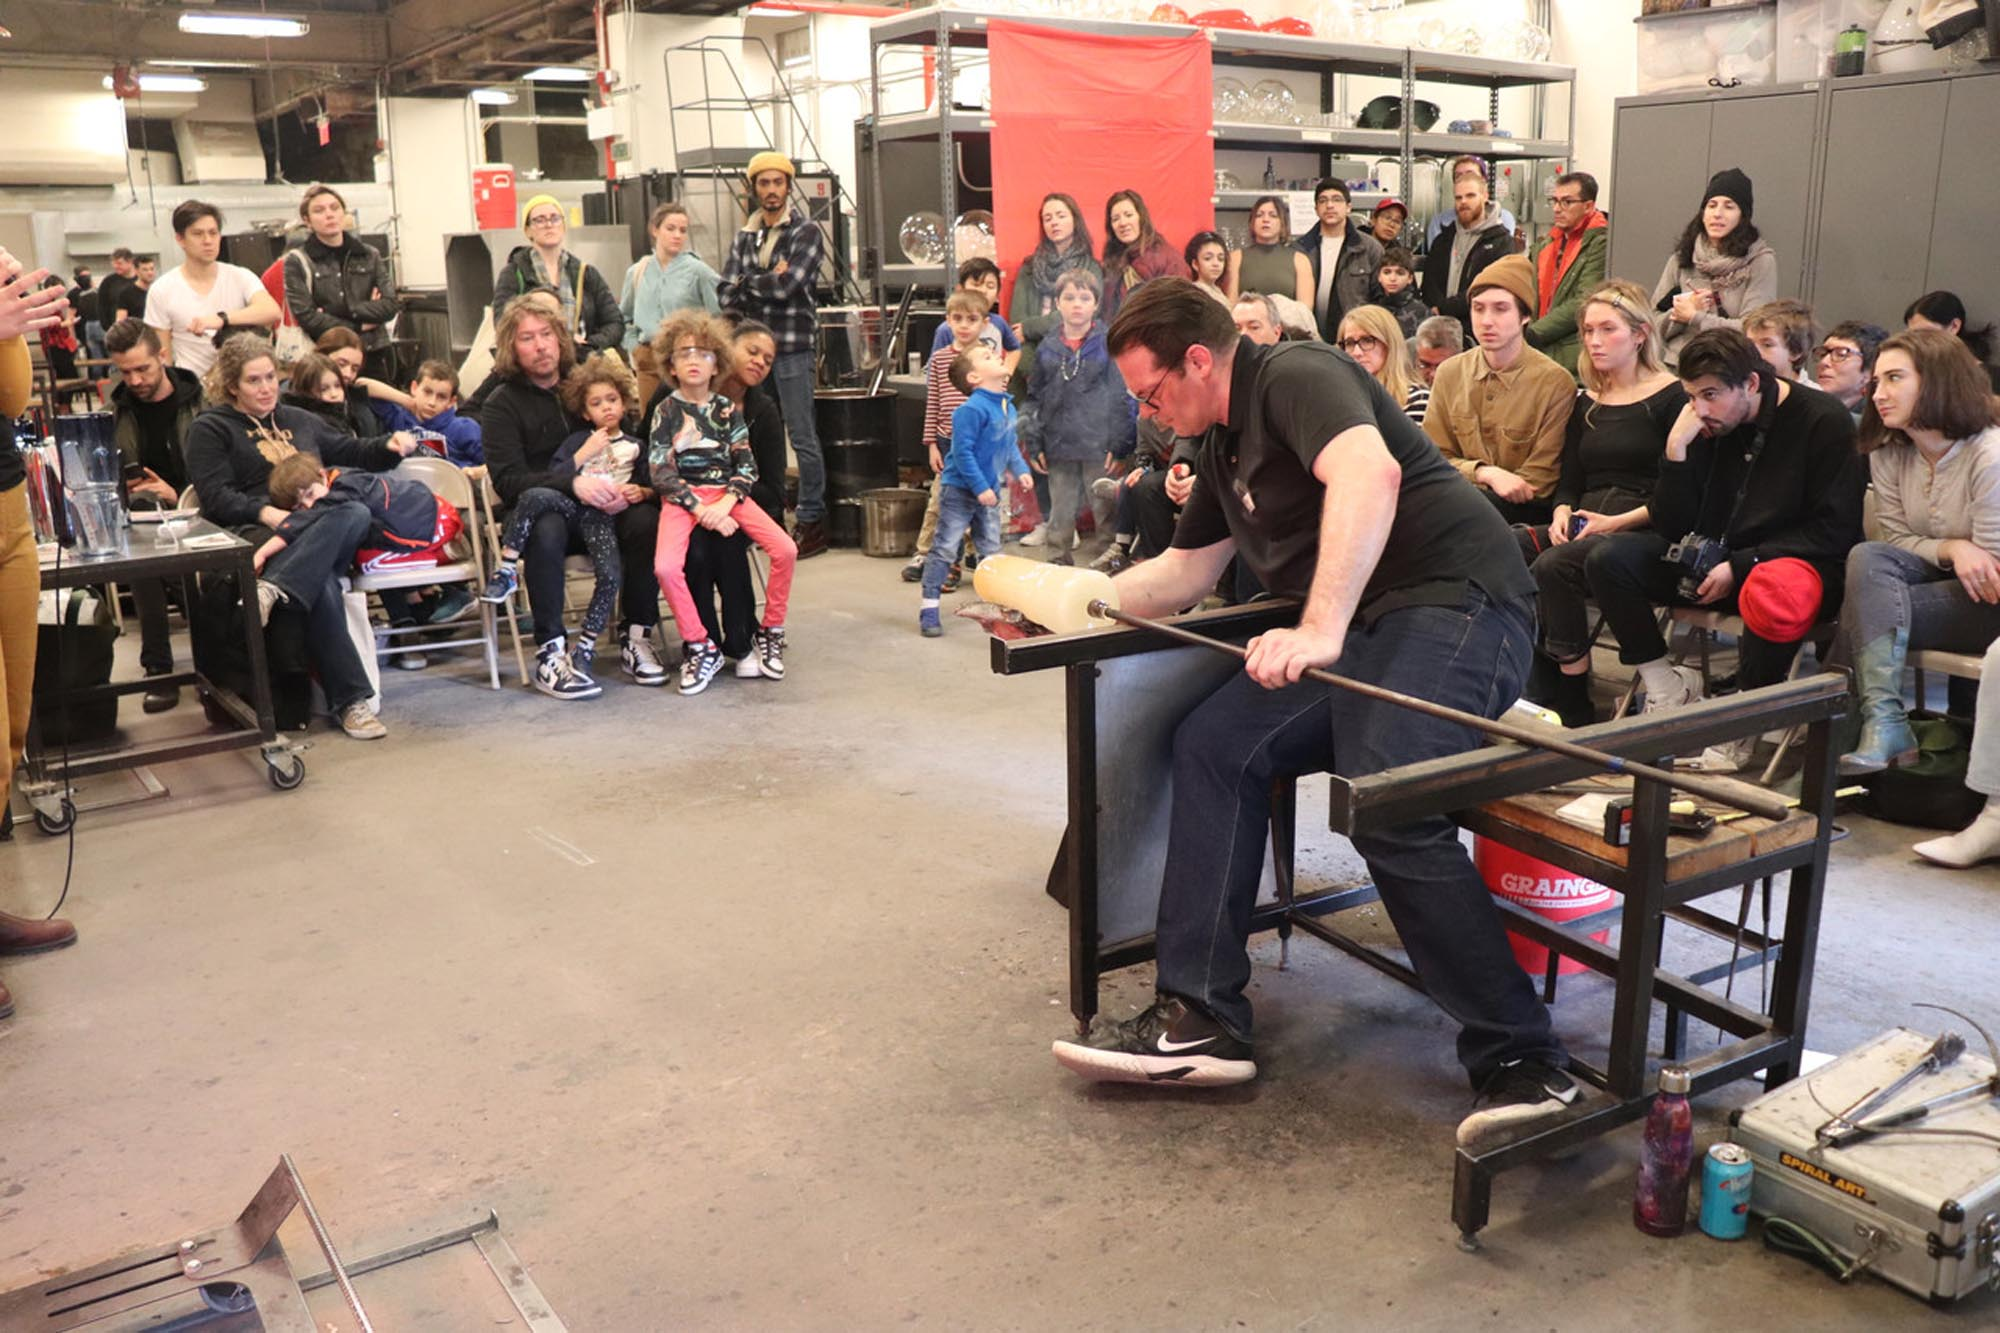 a man doing a glassmaking demonstration in front of an audience